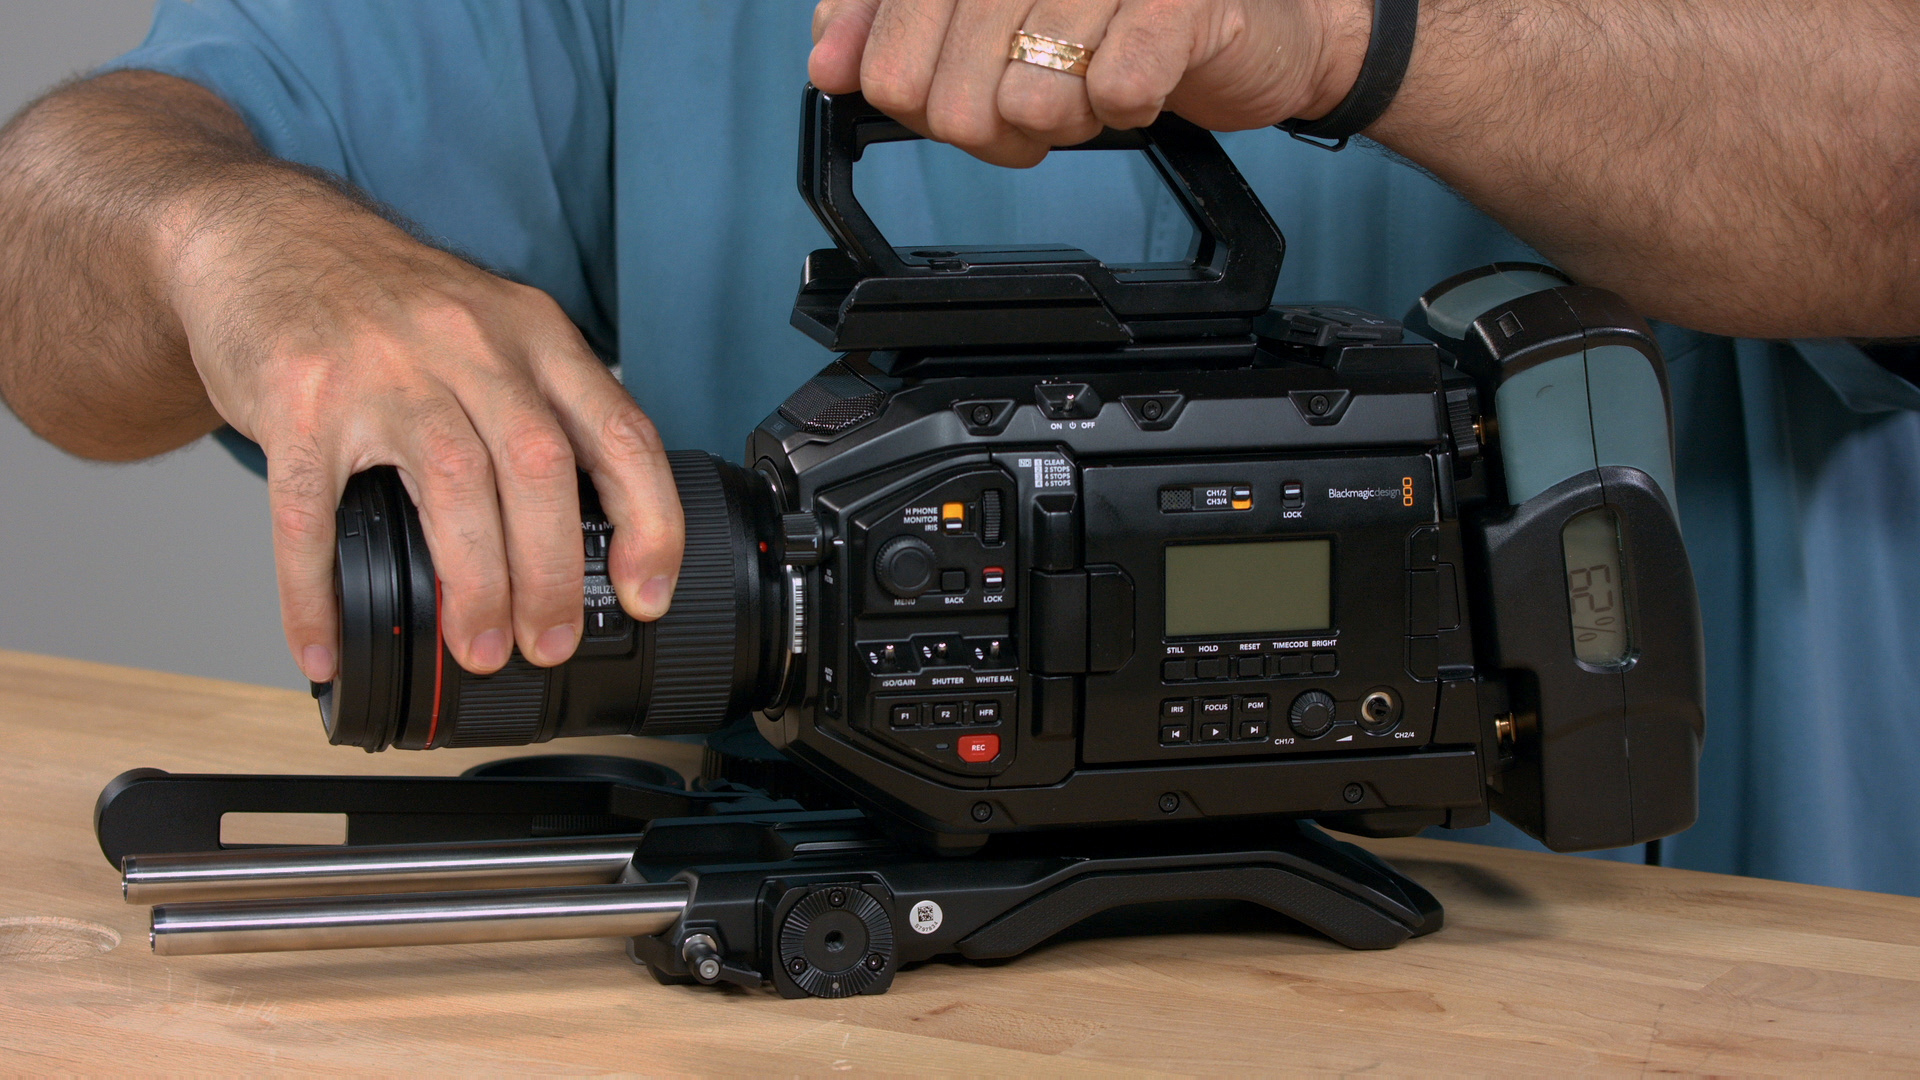 Controlling The Lens With The Micro Studio Camera